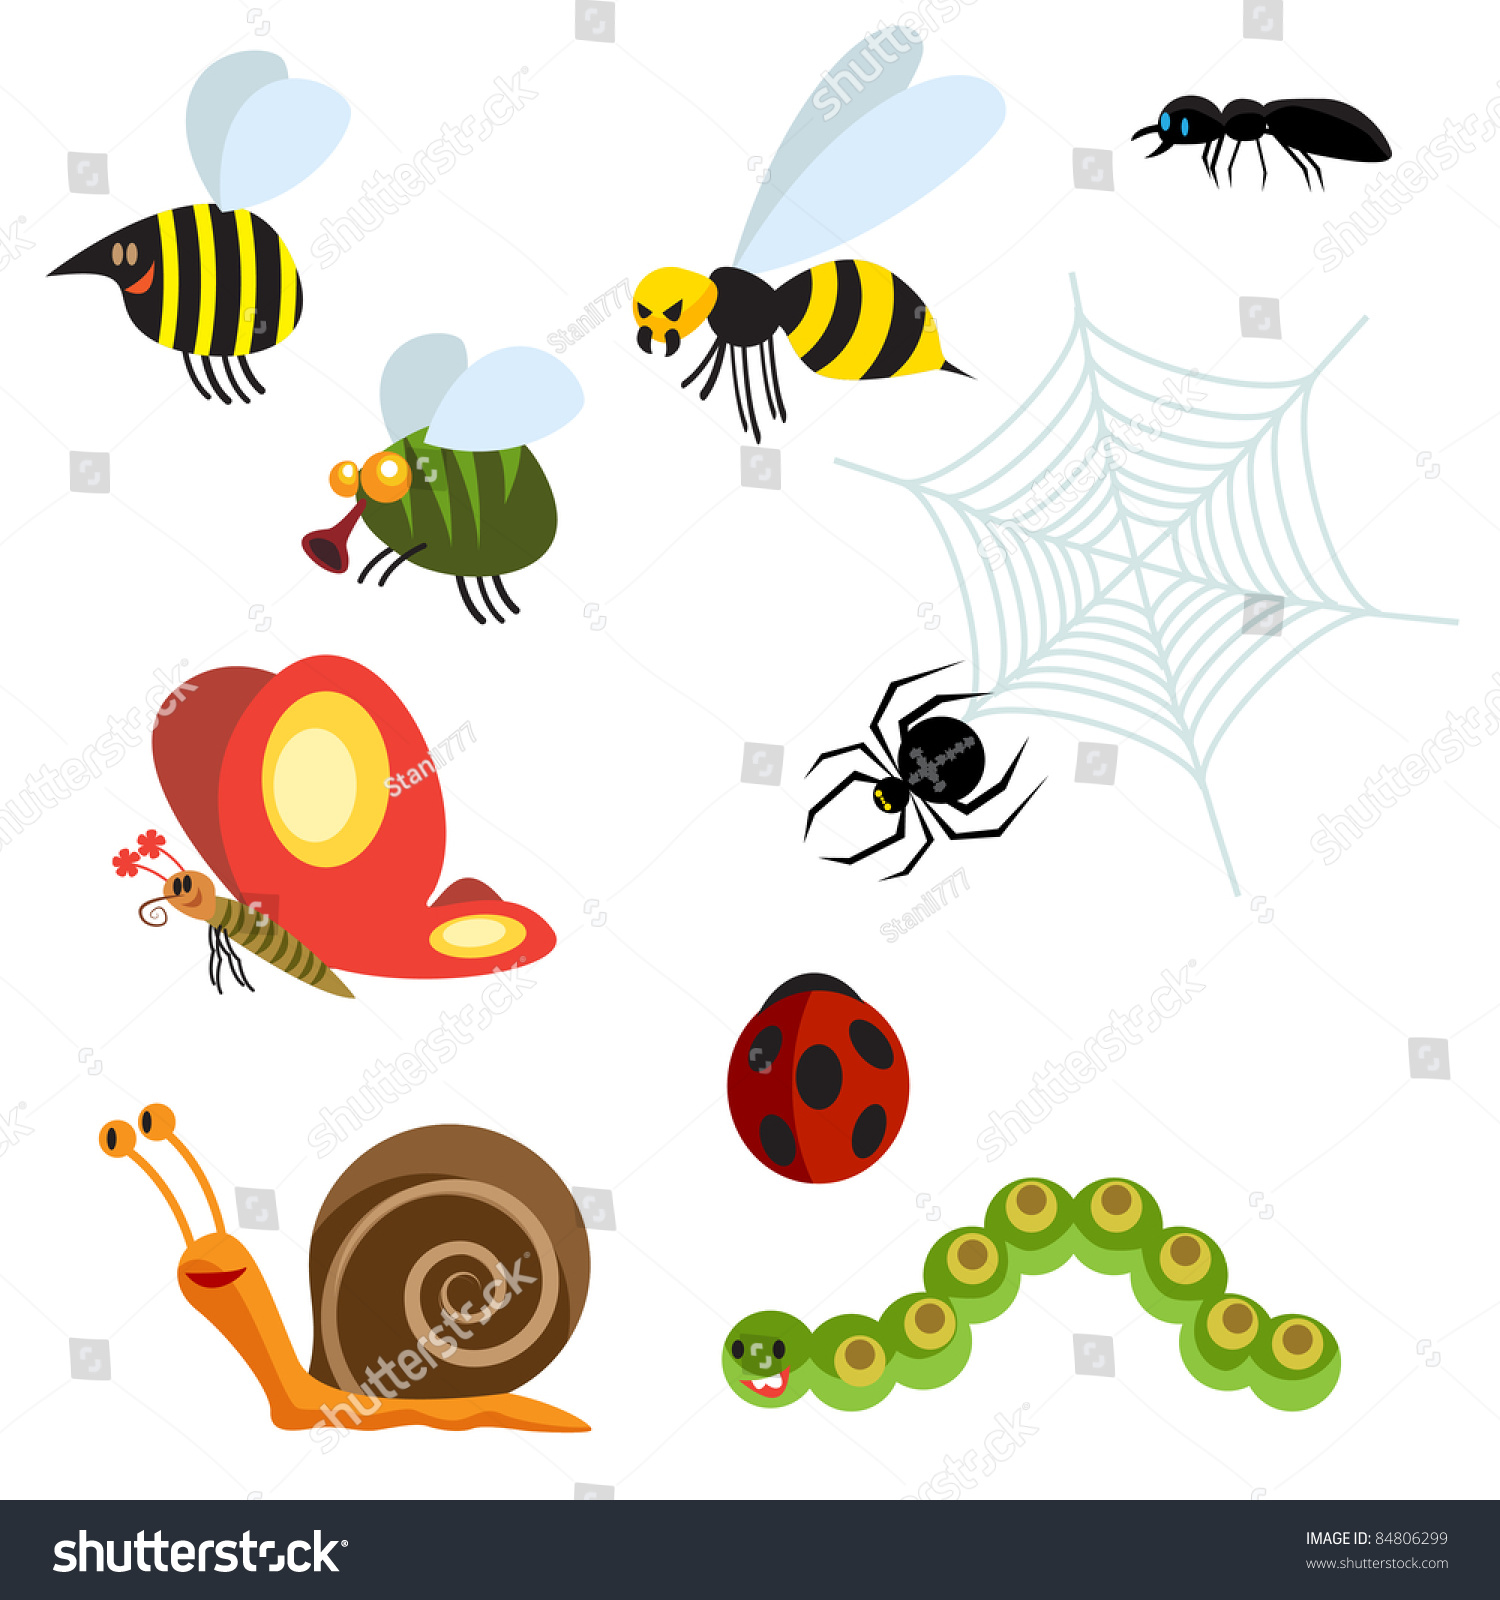 Garden Animals Stock Vector 84806299 Shutterstock